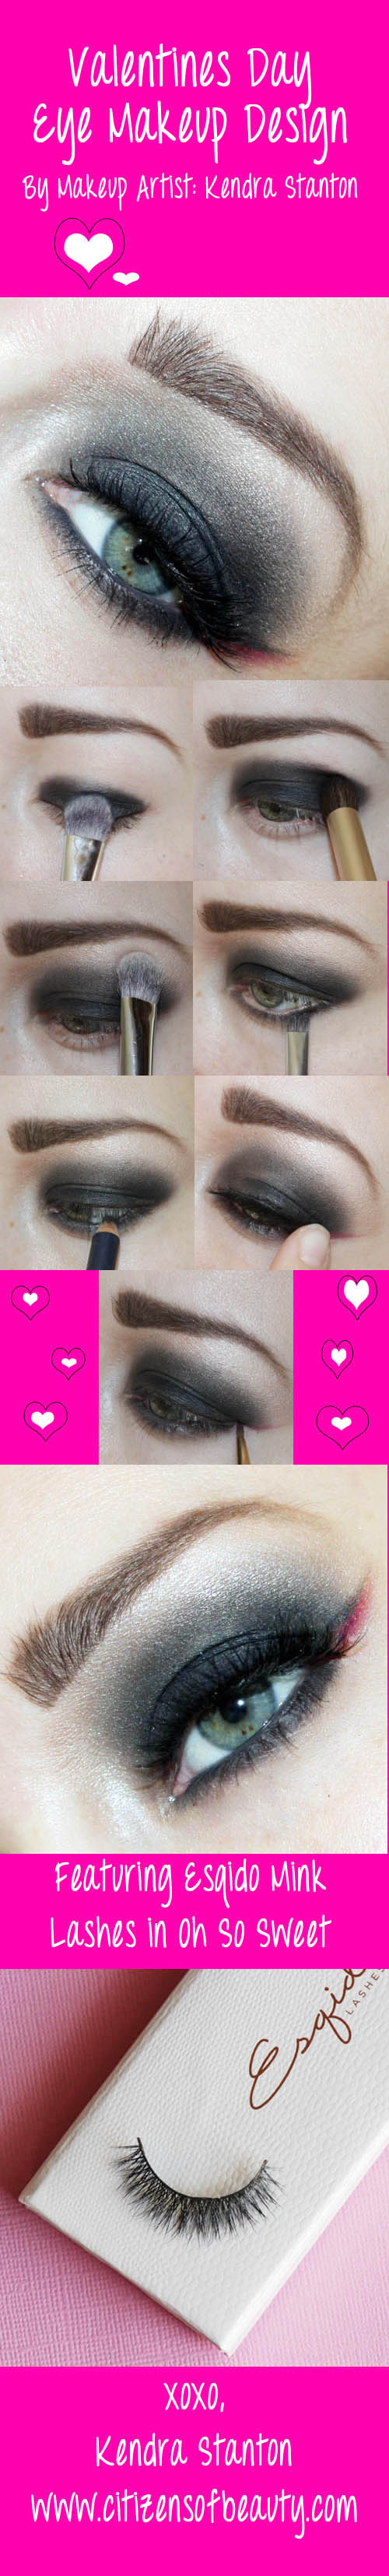 valentines day eye makeup